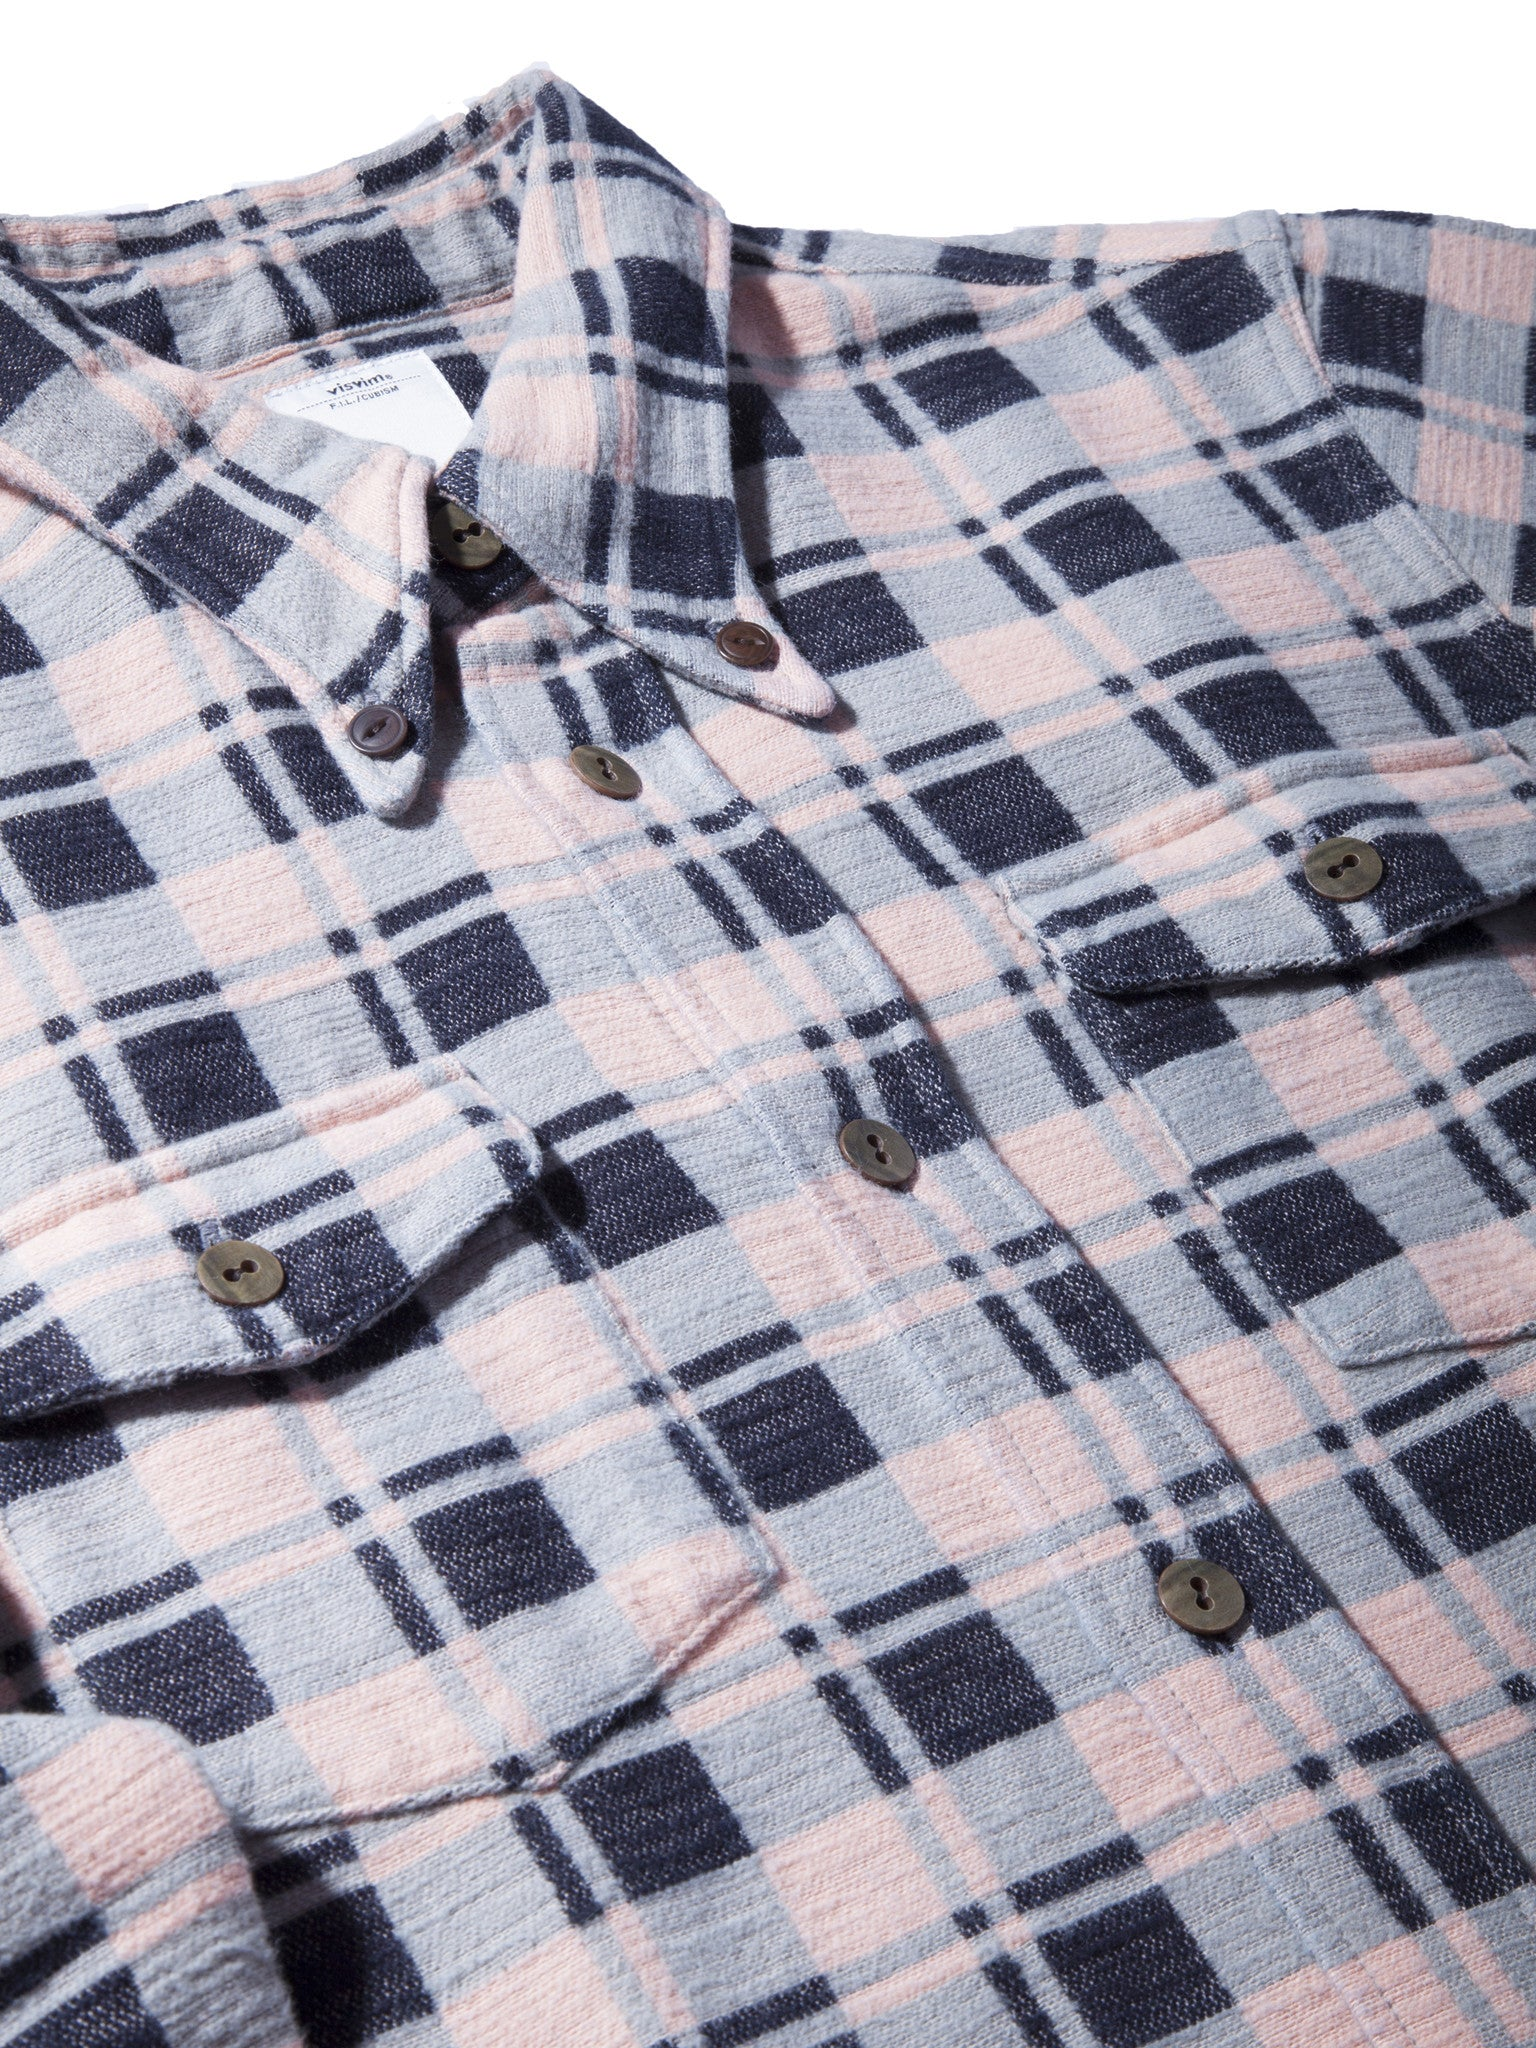 Orange Wally Shirt (Indigo DB CK) 5